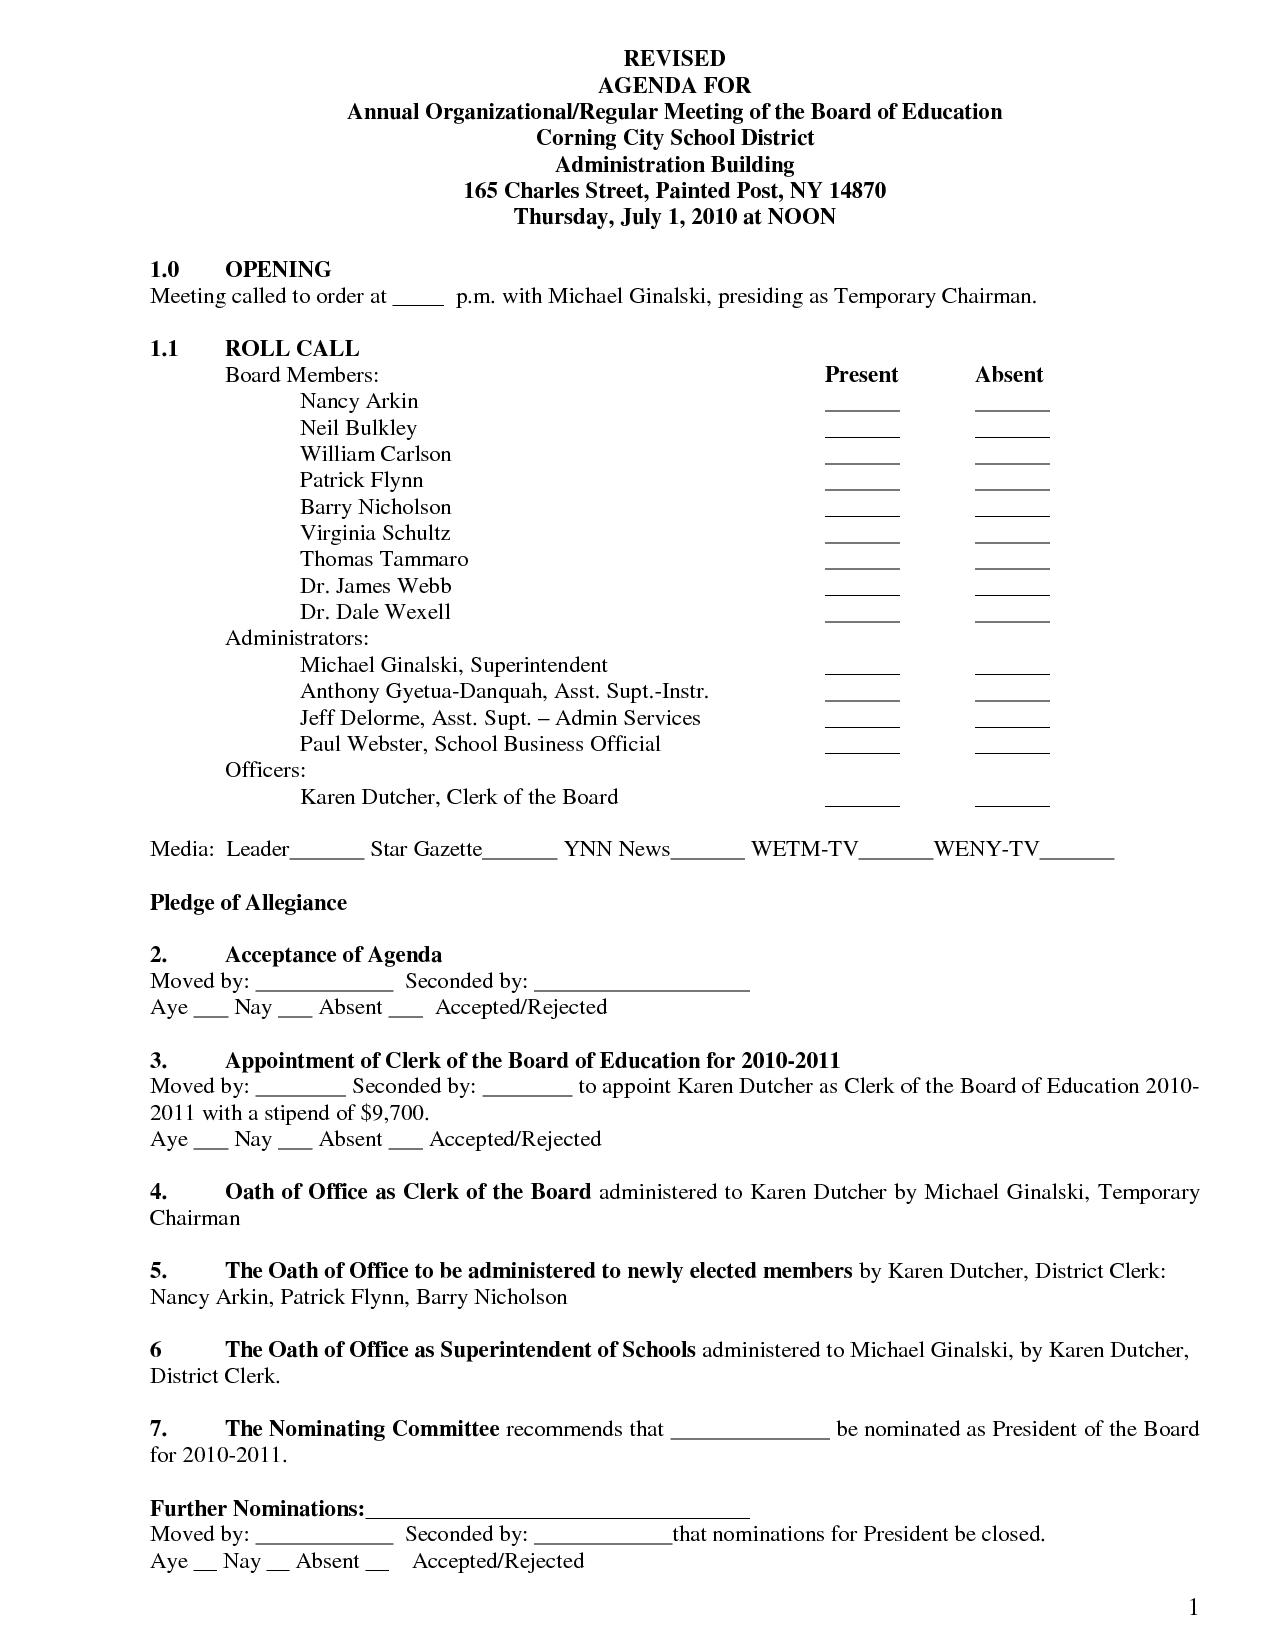 Hoa Board Of Directors Meeting Agenda Template